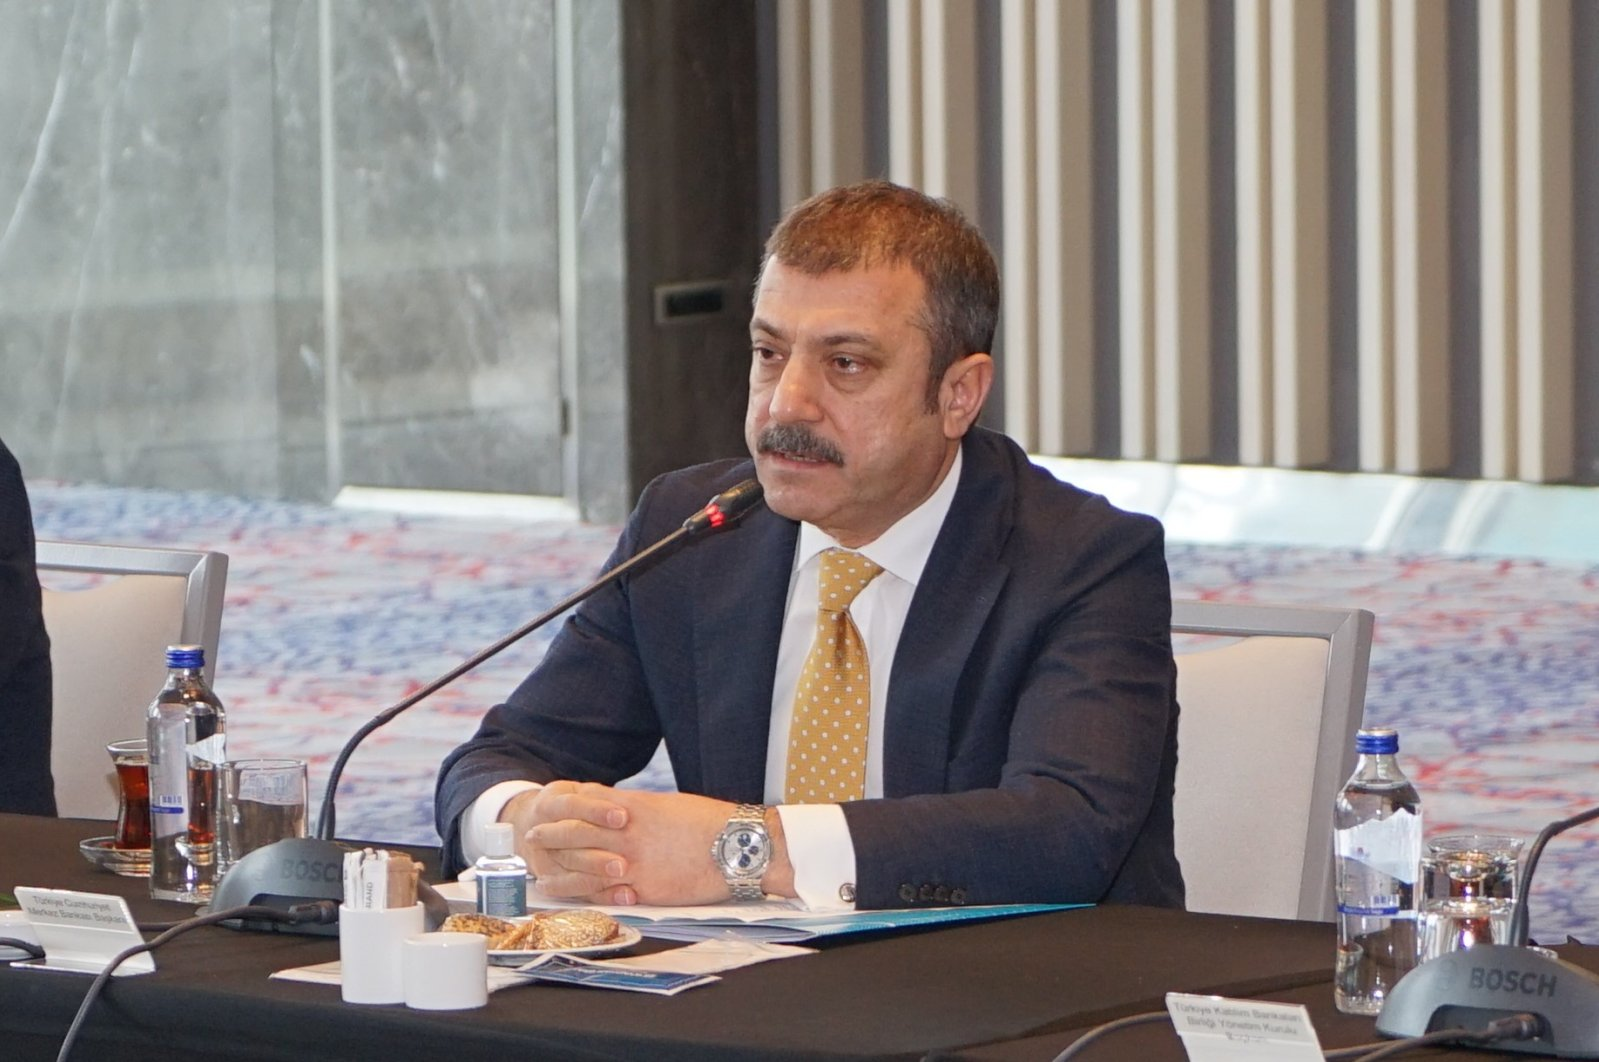 Central Bank of the Republic of Turkey (CBRT) Governor Şahap Kavcıoğlu during a meeting with general managers from a few banks, Istanbul, Turkey, March 24, 2021. (CBRT via DHA)